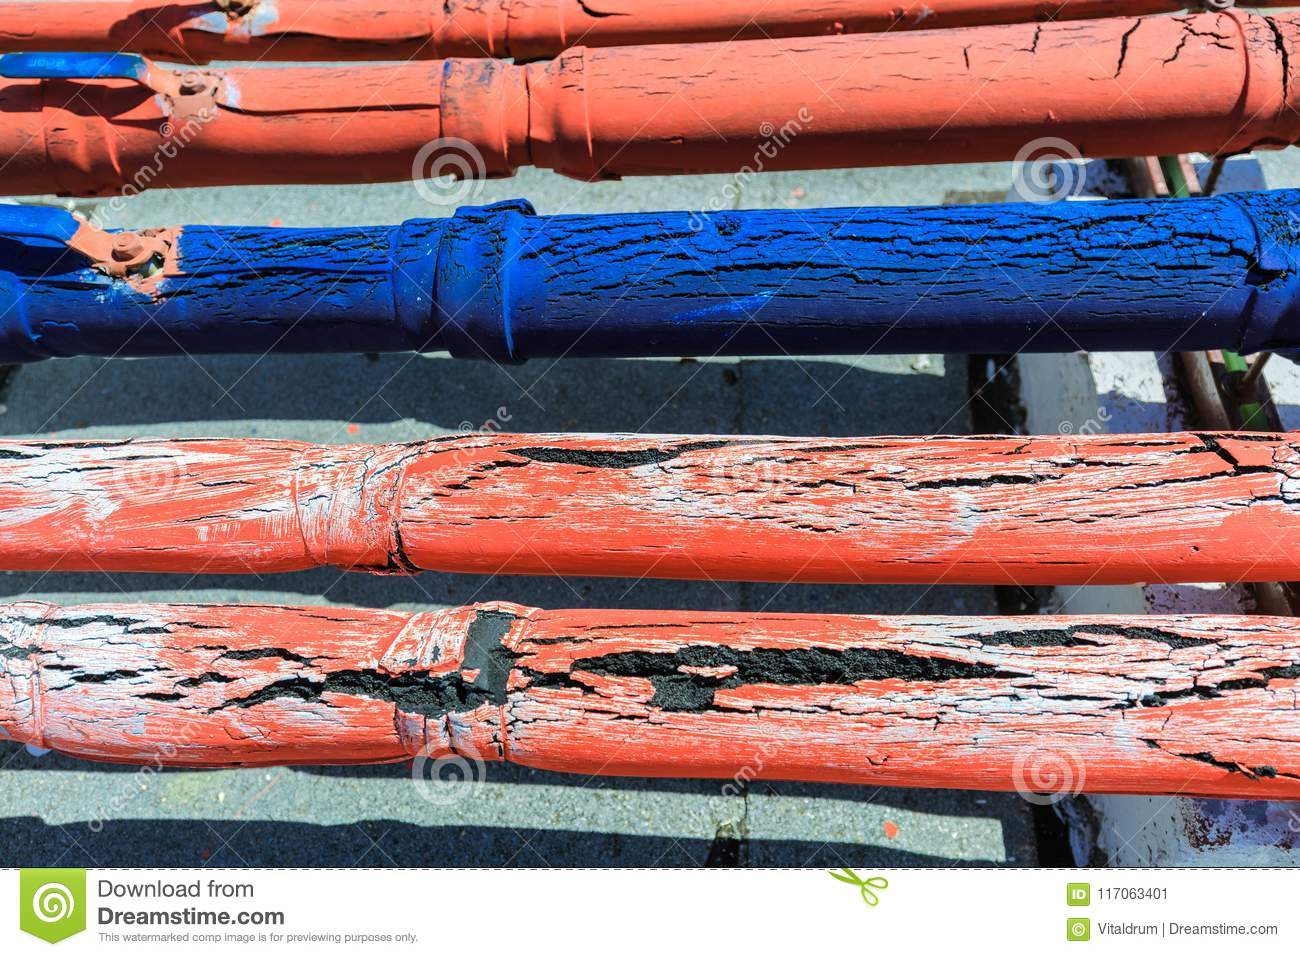 Amazing detailed closeup view of old cracked rubber covered communication pipes, abstract